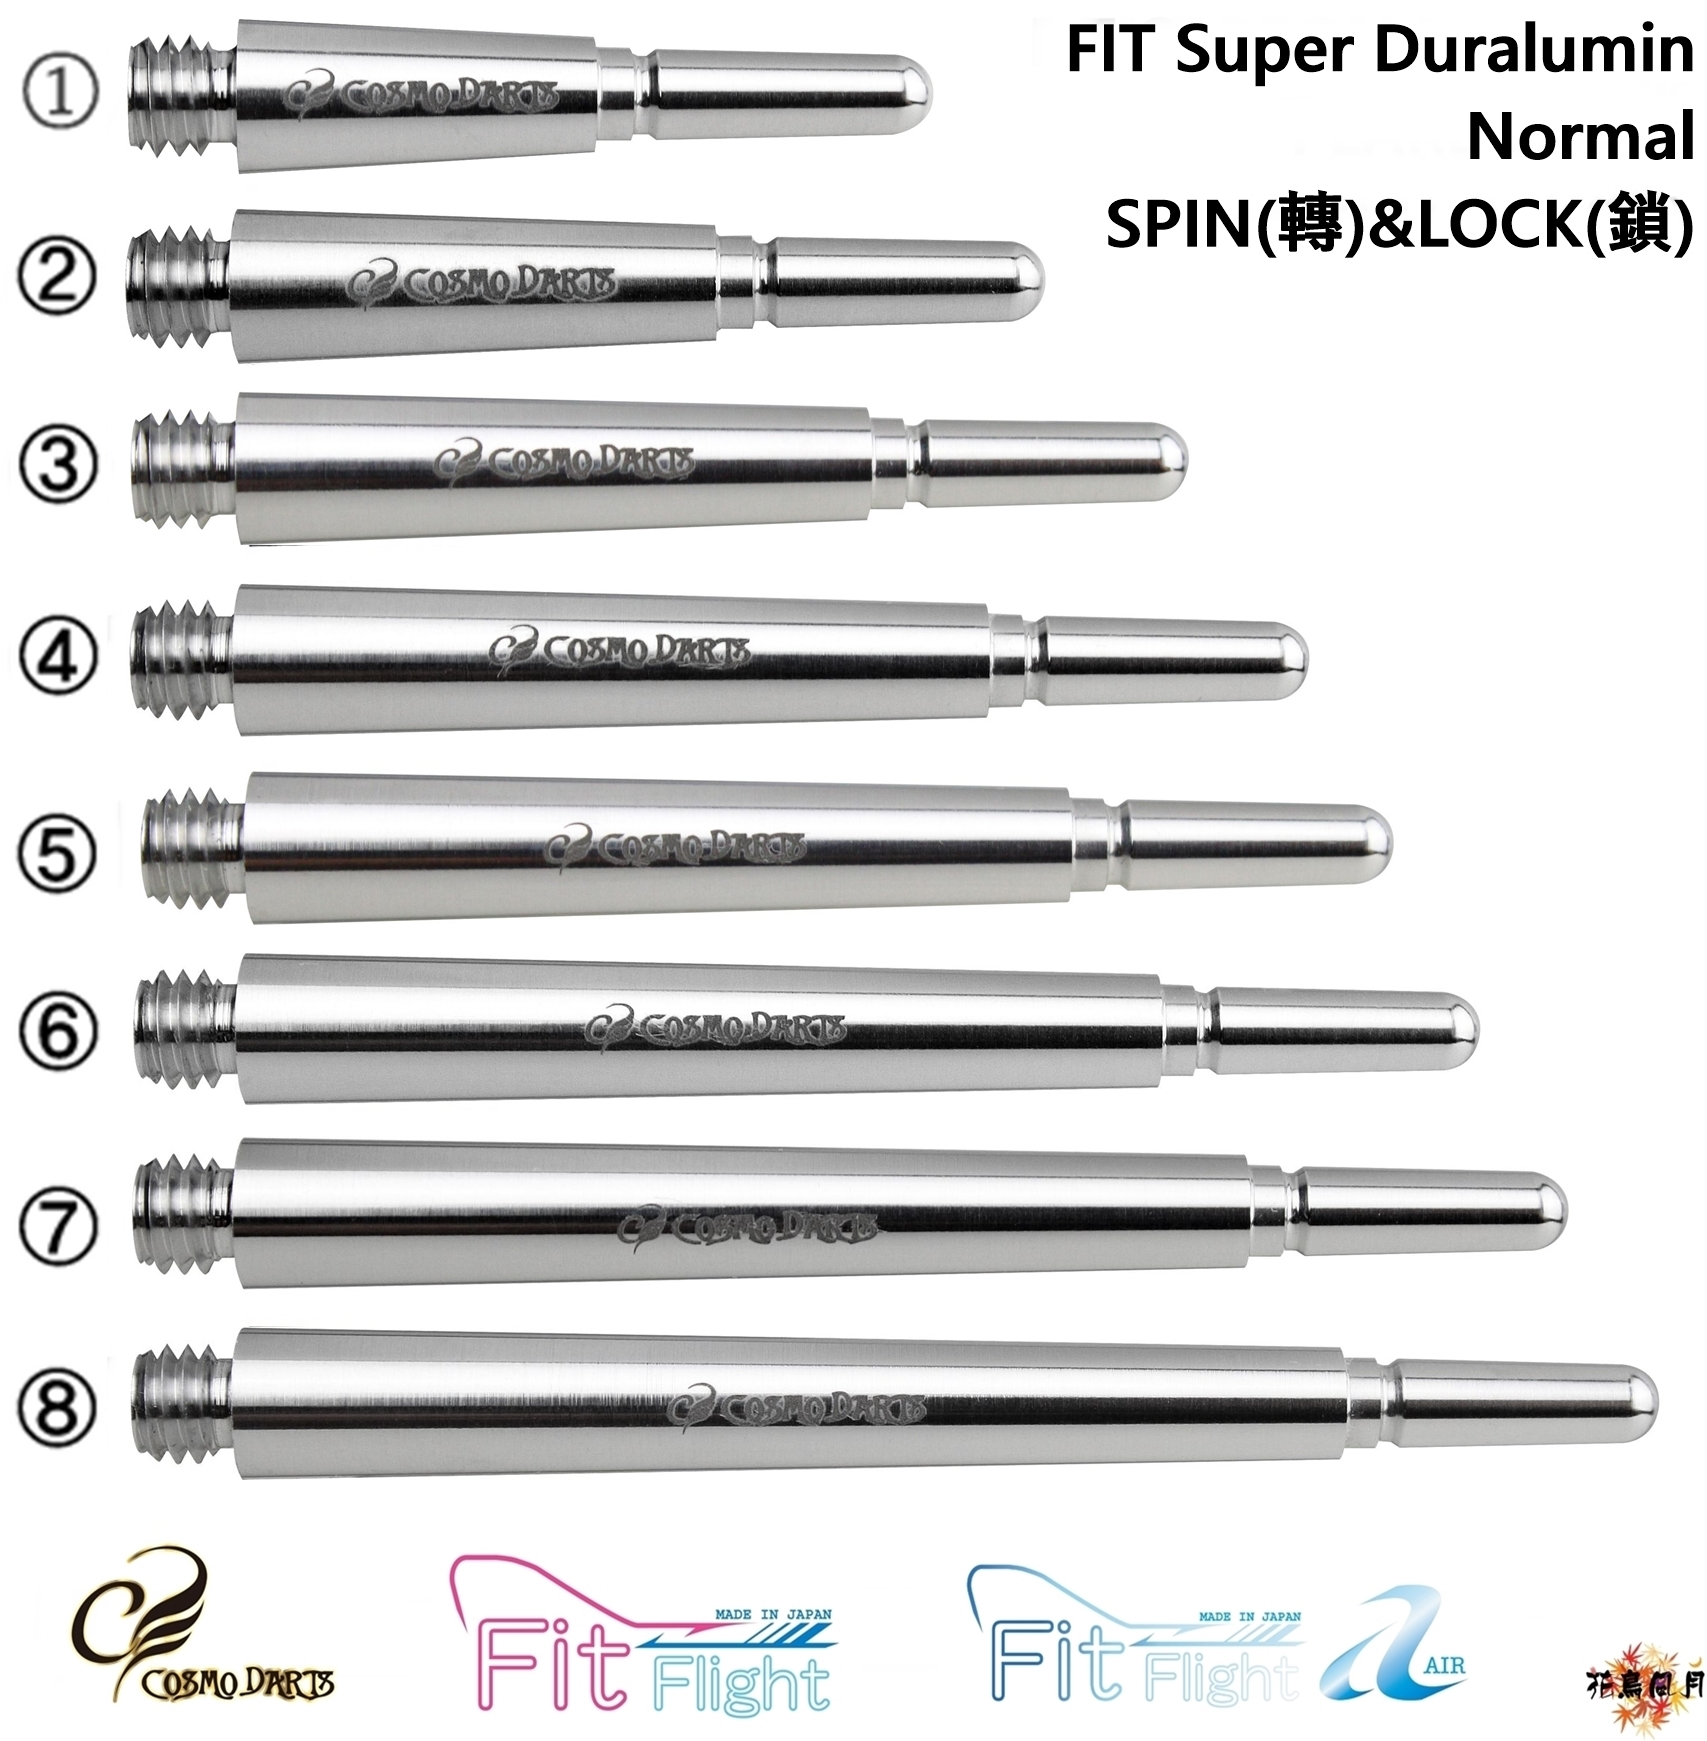 Fit-Super-Duralumin-nomal-1.jpg